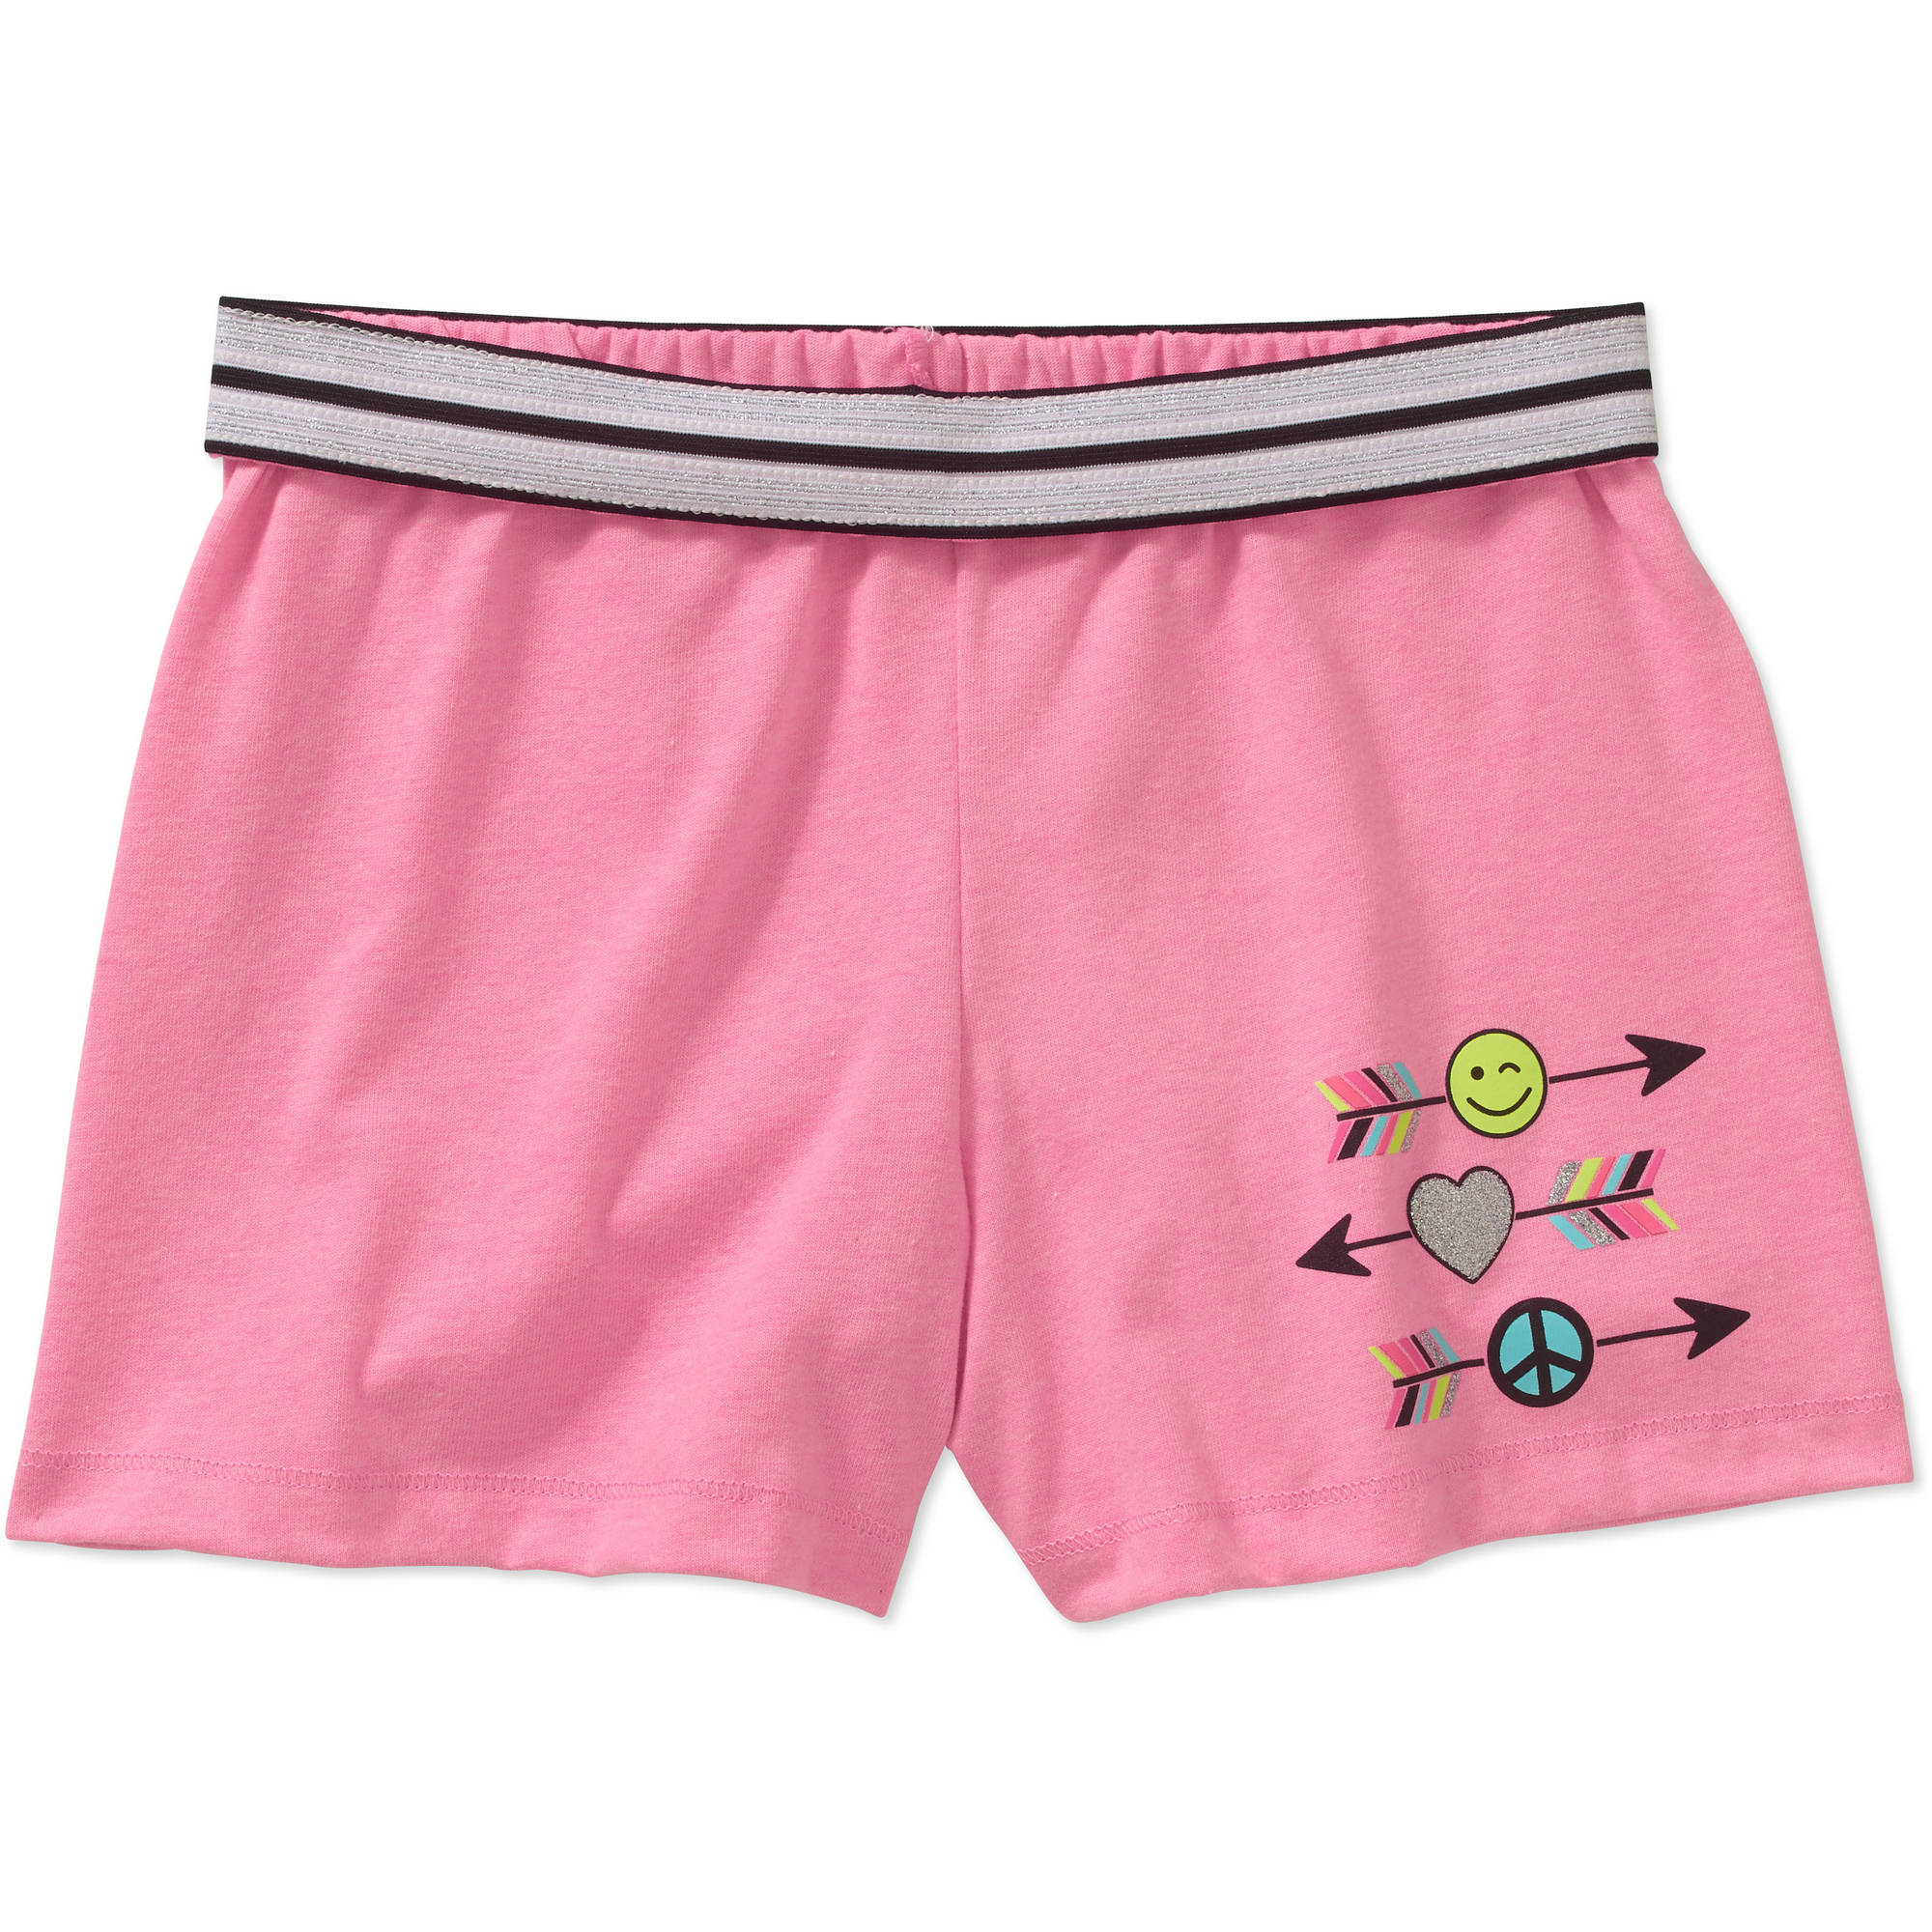 Faded Glory Girls' Graphic Shorts by